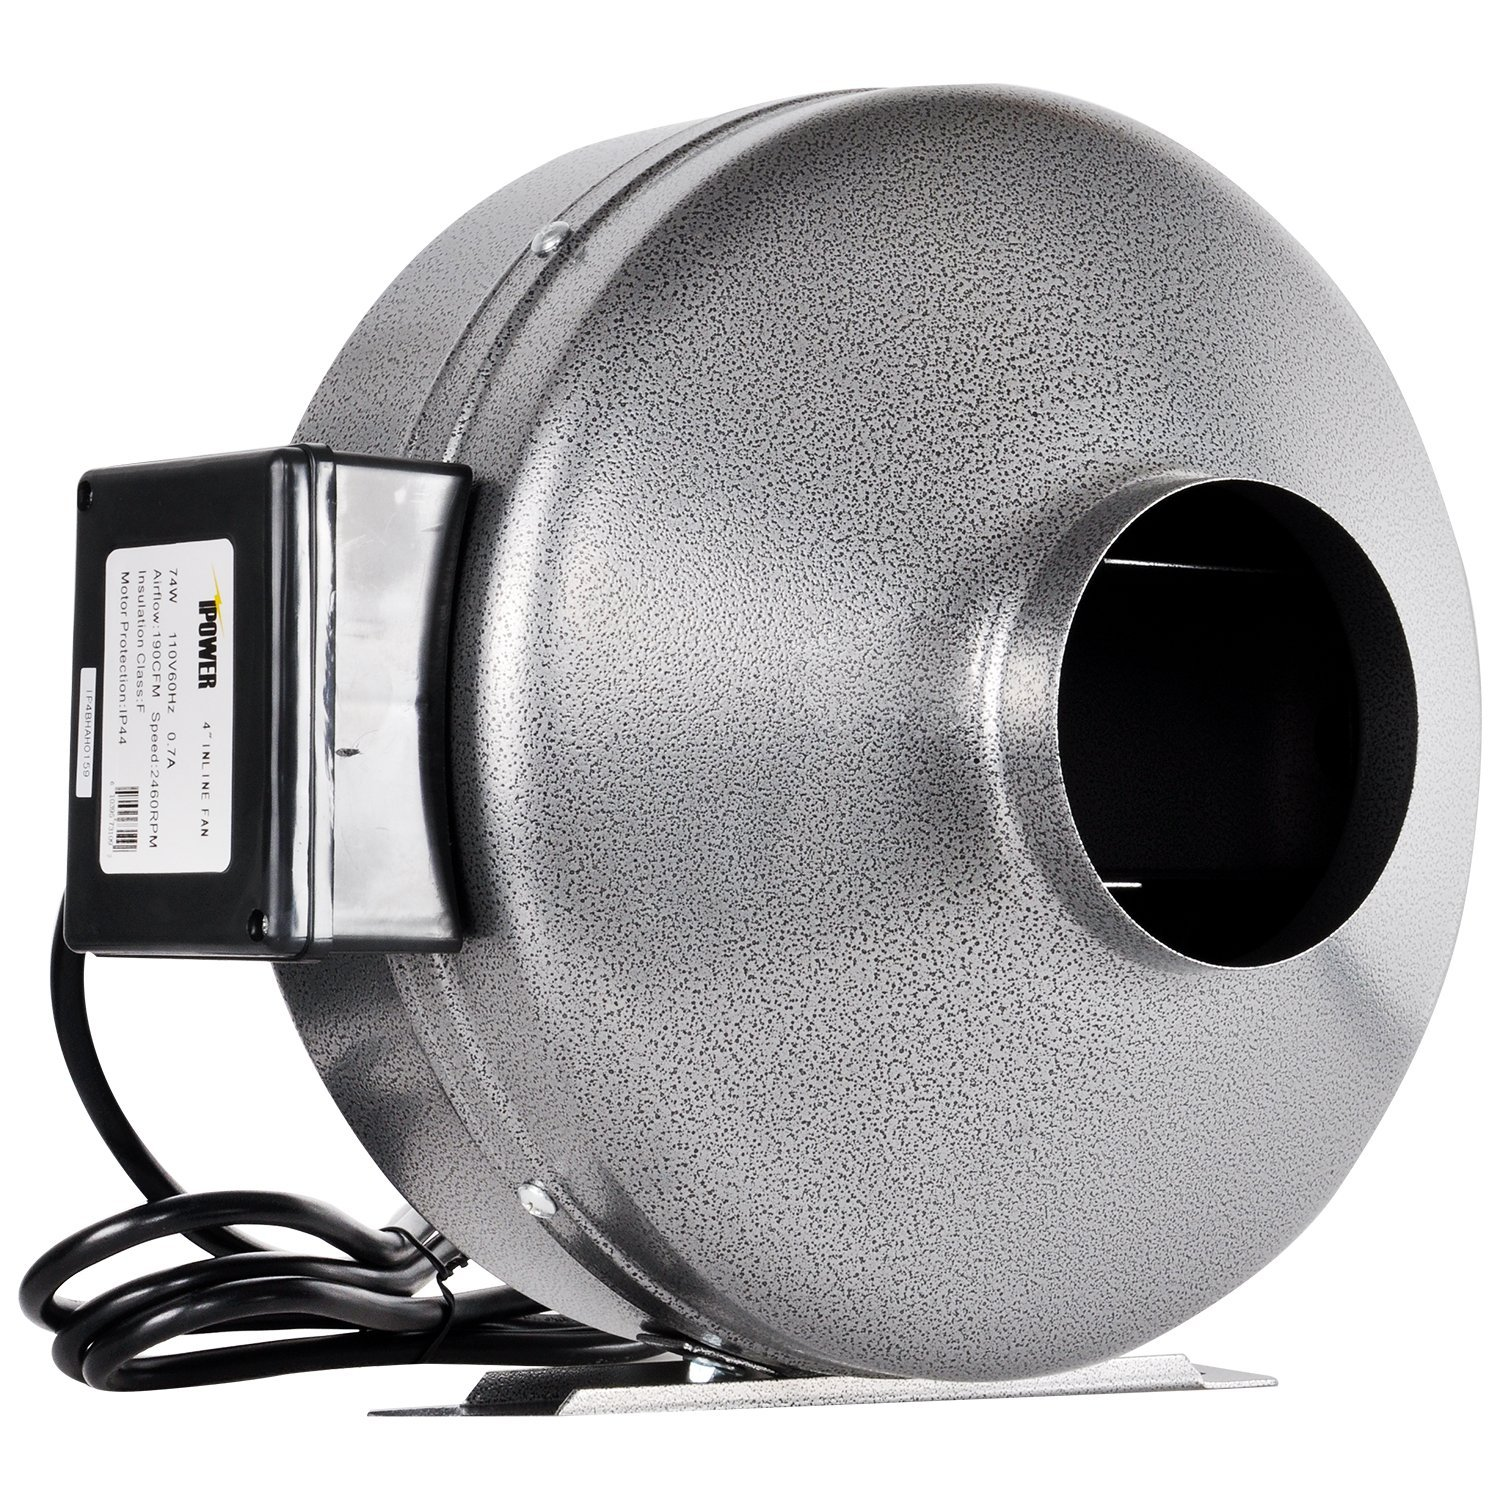 iPower 4 Inch 190 CFM Duct Inline Fan Vent Blower for HVAC Exhaust and Intake, Grounded Power Cord